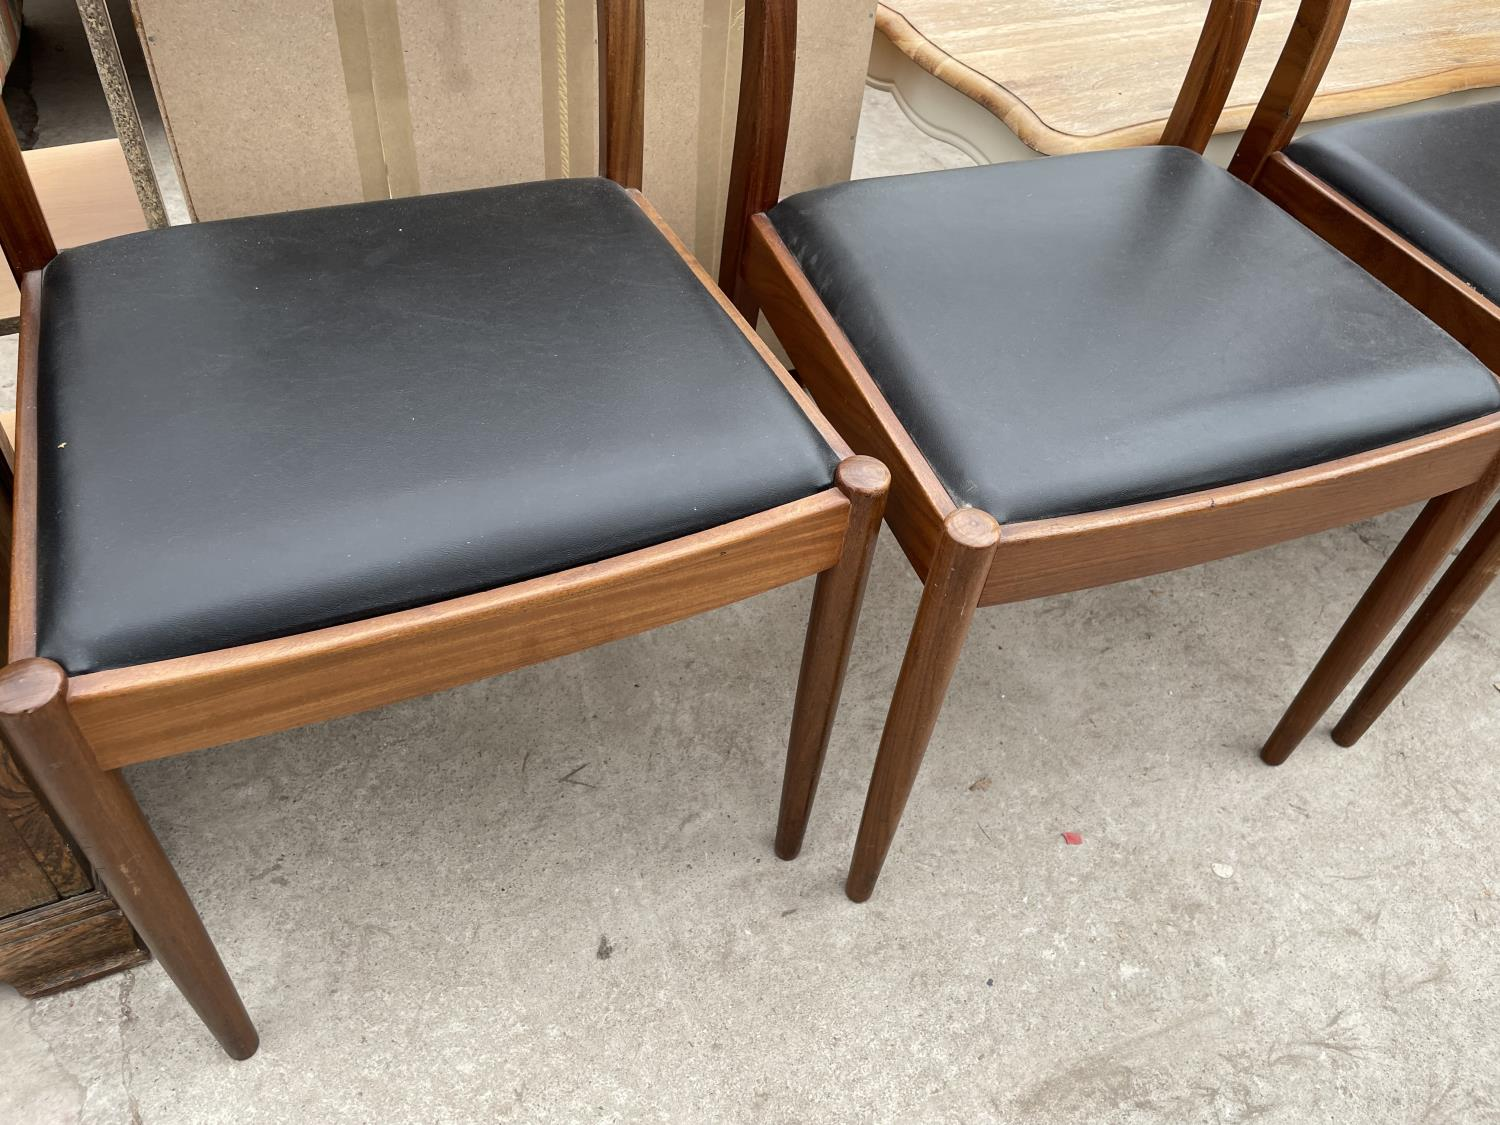 A SET OF FOUR RETRO TEAK G-PLAN DINING CHAIRS - Image 3 of 6